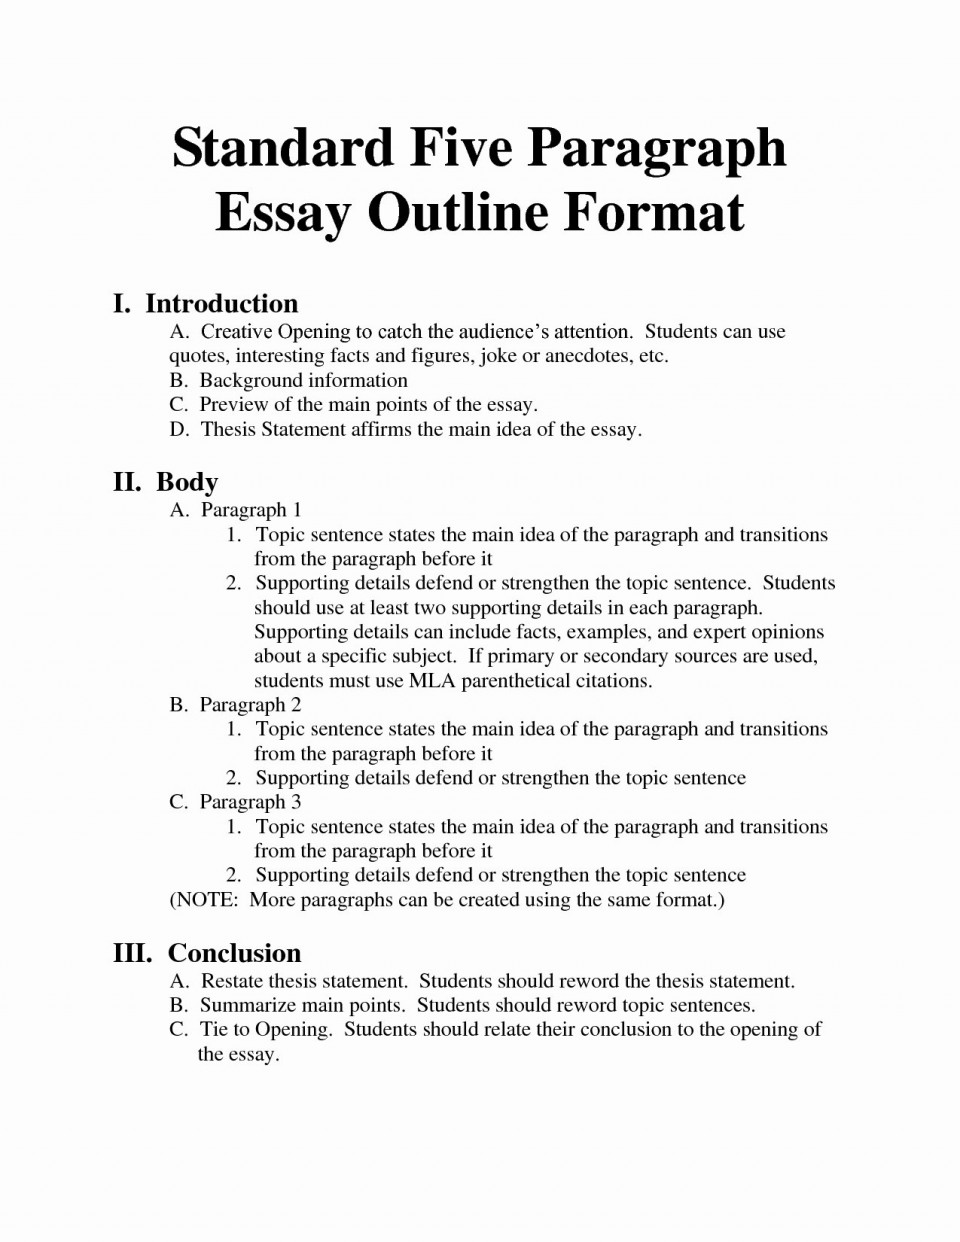 016 Unique Evaluation Essay Outline English Format Movie Of Self Film Template Layout Critical Example Incredible Book Samples On Movies 960